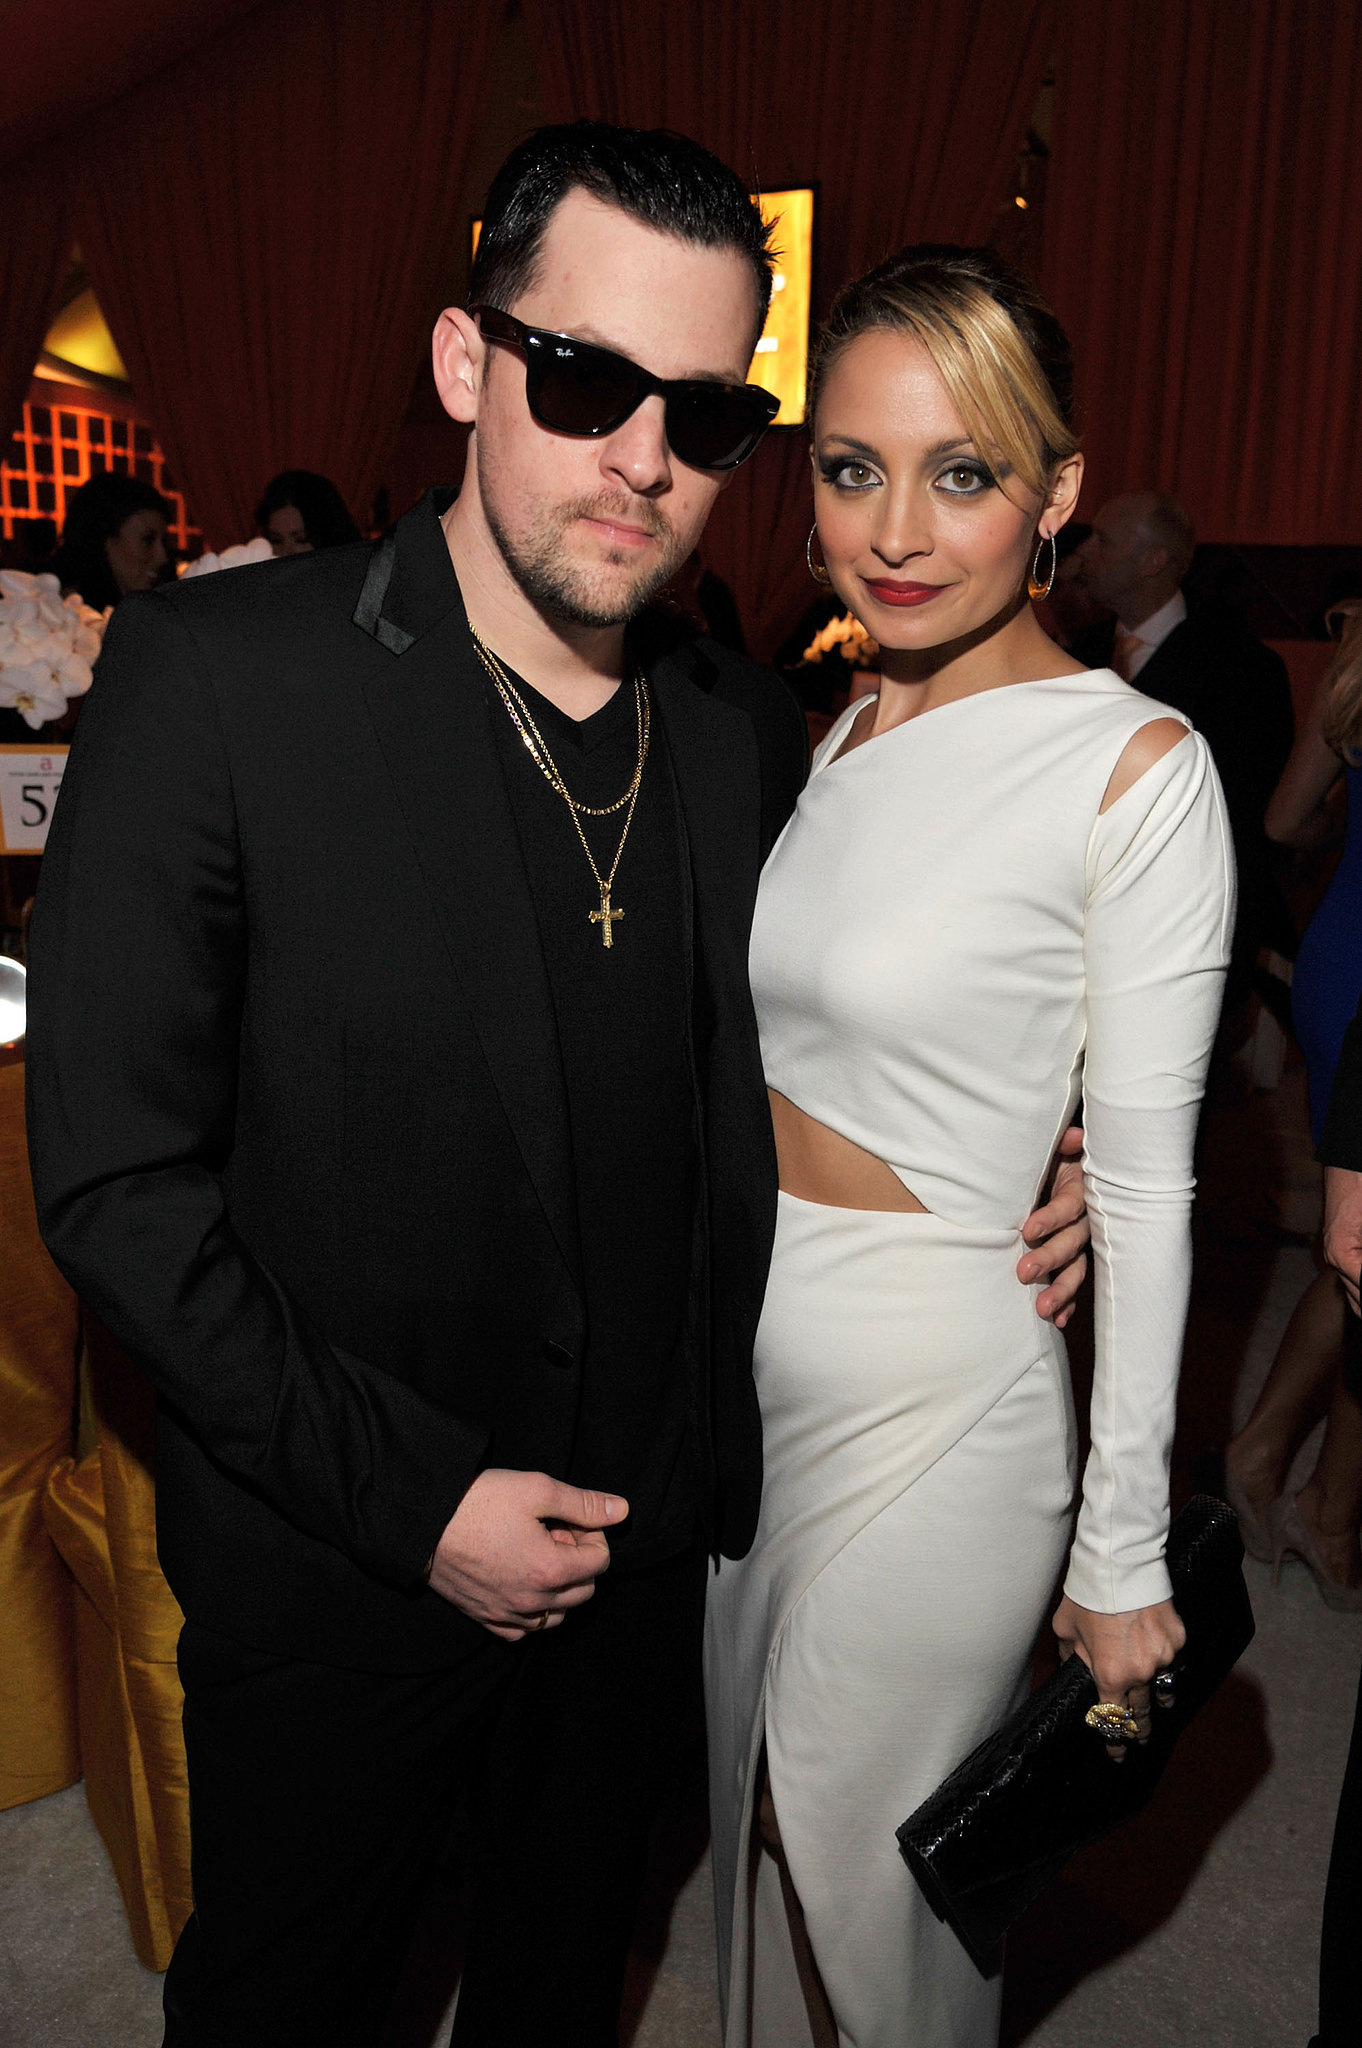 Nicole Richie went for a vintage look when she and Joel attended Elton John's annual Oscars viewing party in February 2011.